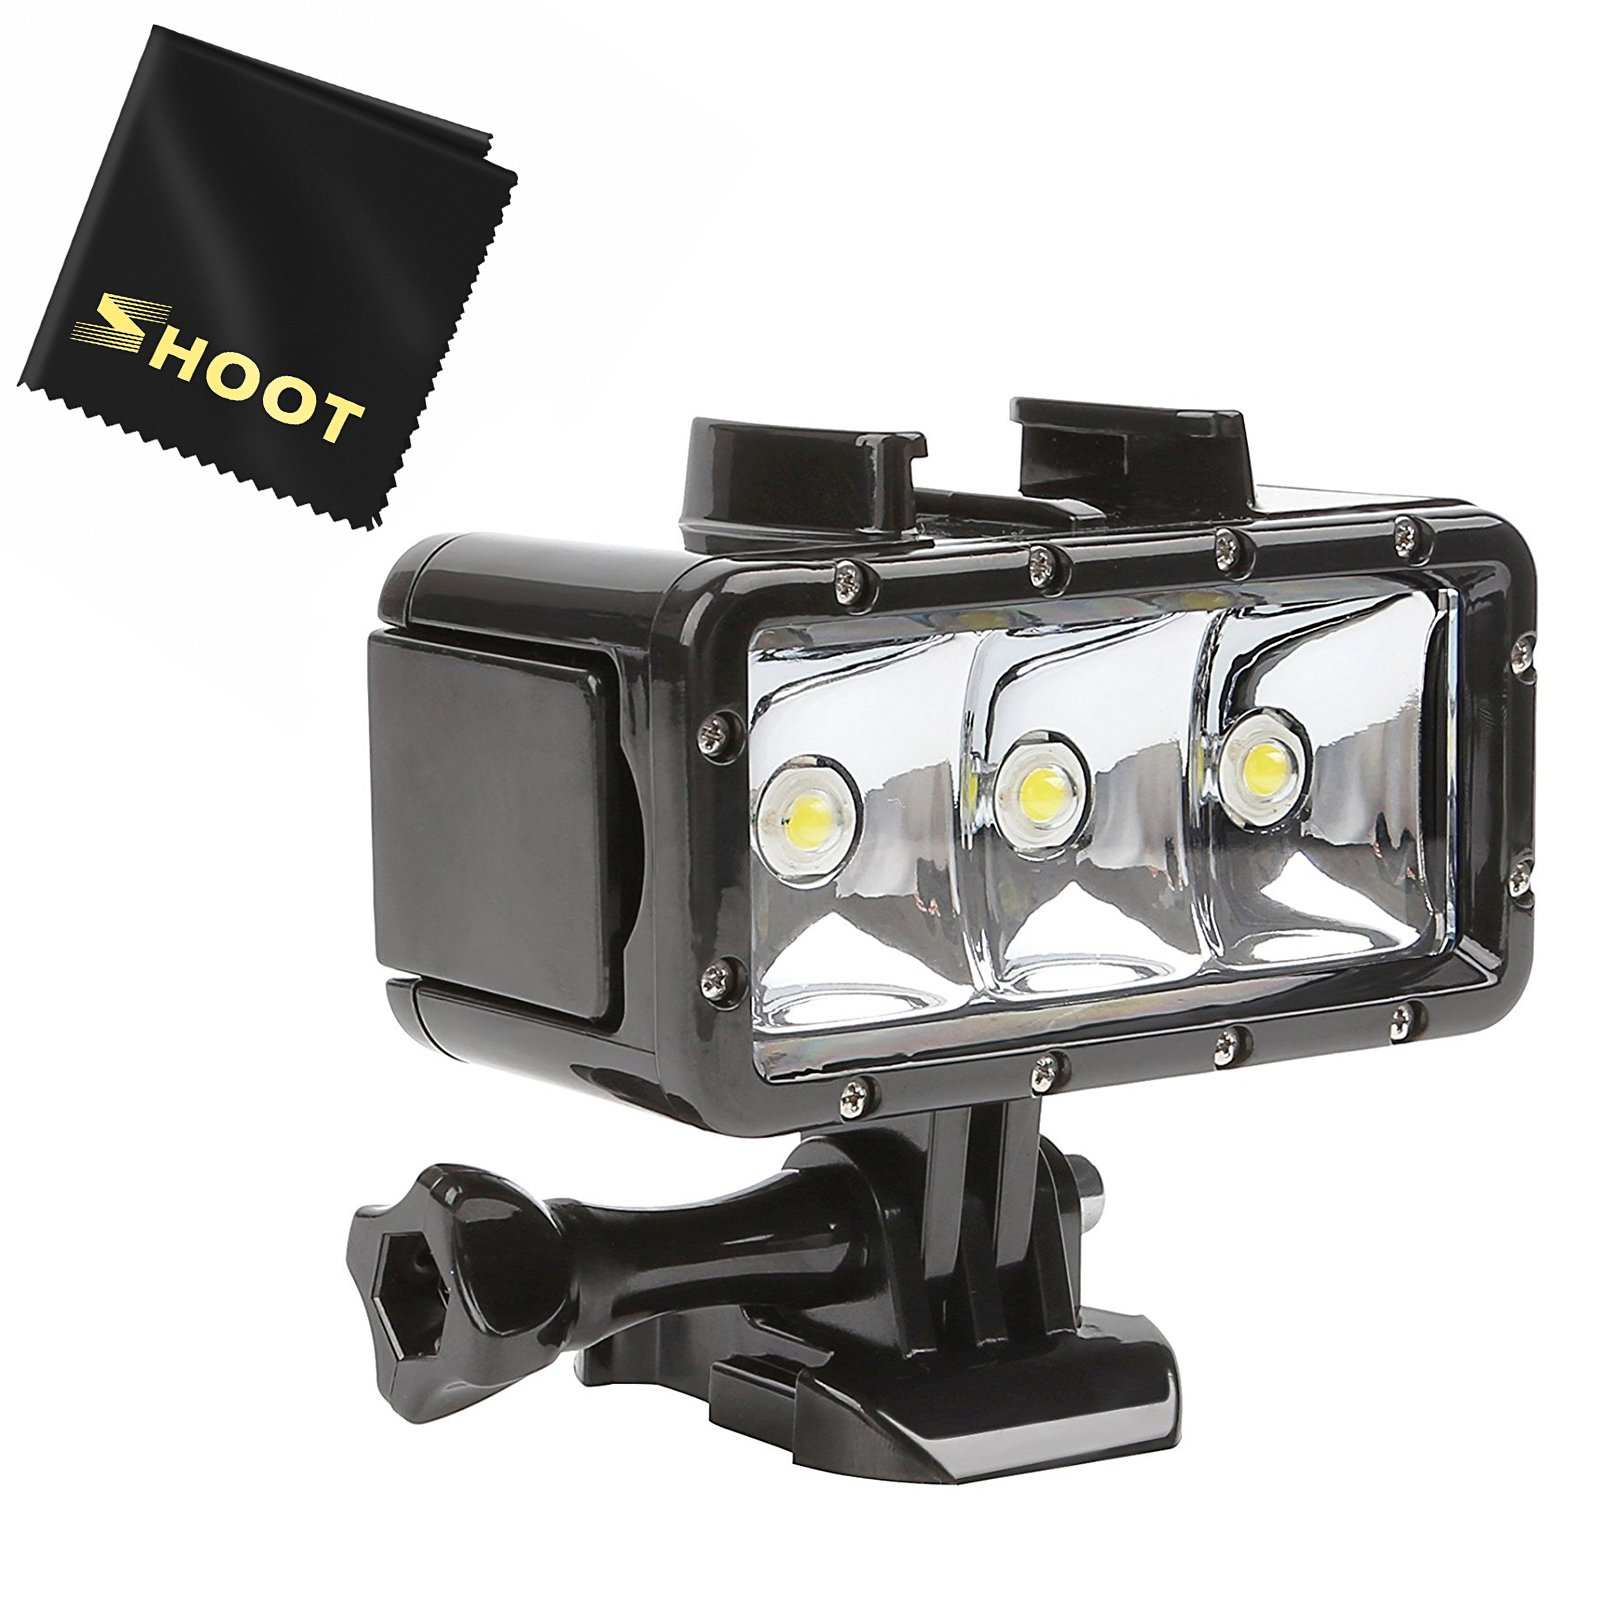 SHOOT Waterproof 30m Diving Light High Power Dimmable LED Underwater Fill Light for GoPro Hero 6/5/5S/4/4S/3+,Campark AKASO DBPOWER Crosstour SHOOT Camera with 1200mAh Built-in Rechargeable Battery by SHOOT (Image #1)